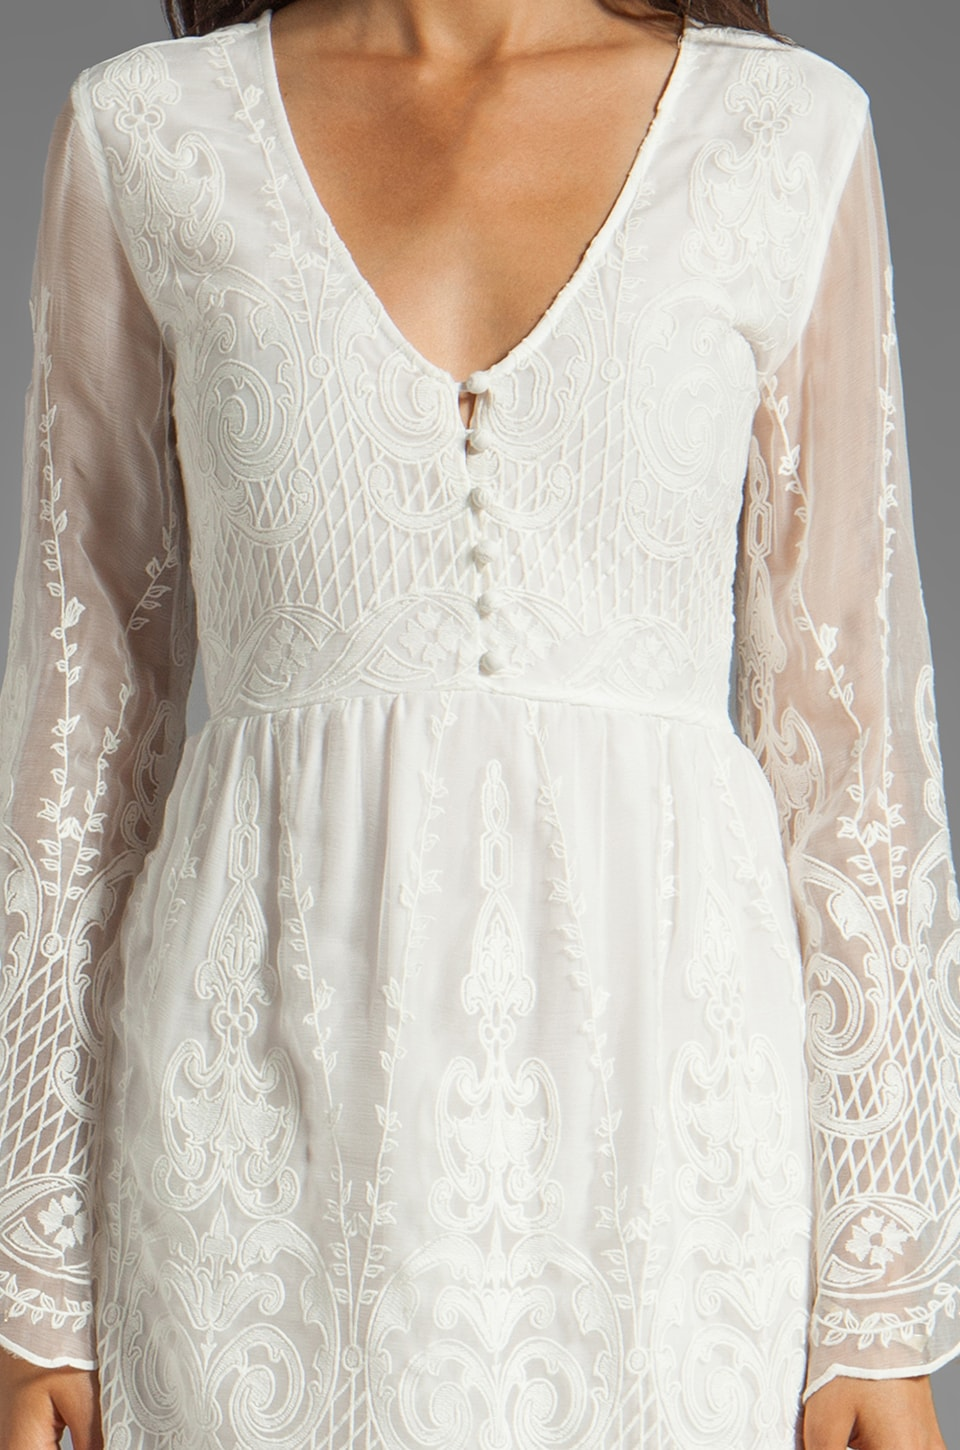 Dolce Vita Jilisa Silk Embroidery Long Sleeve Mini Dress in Snow